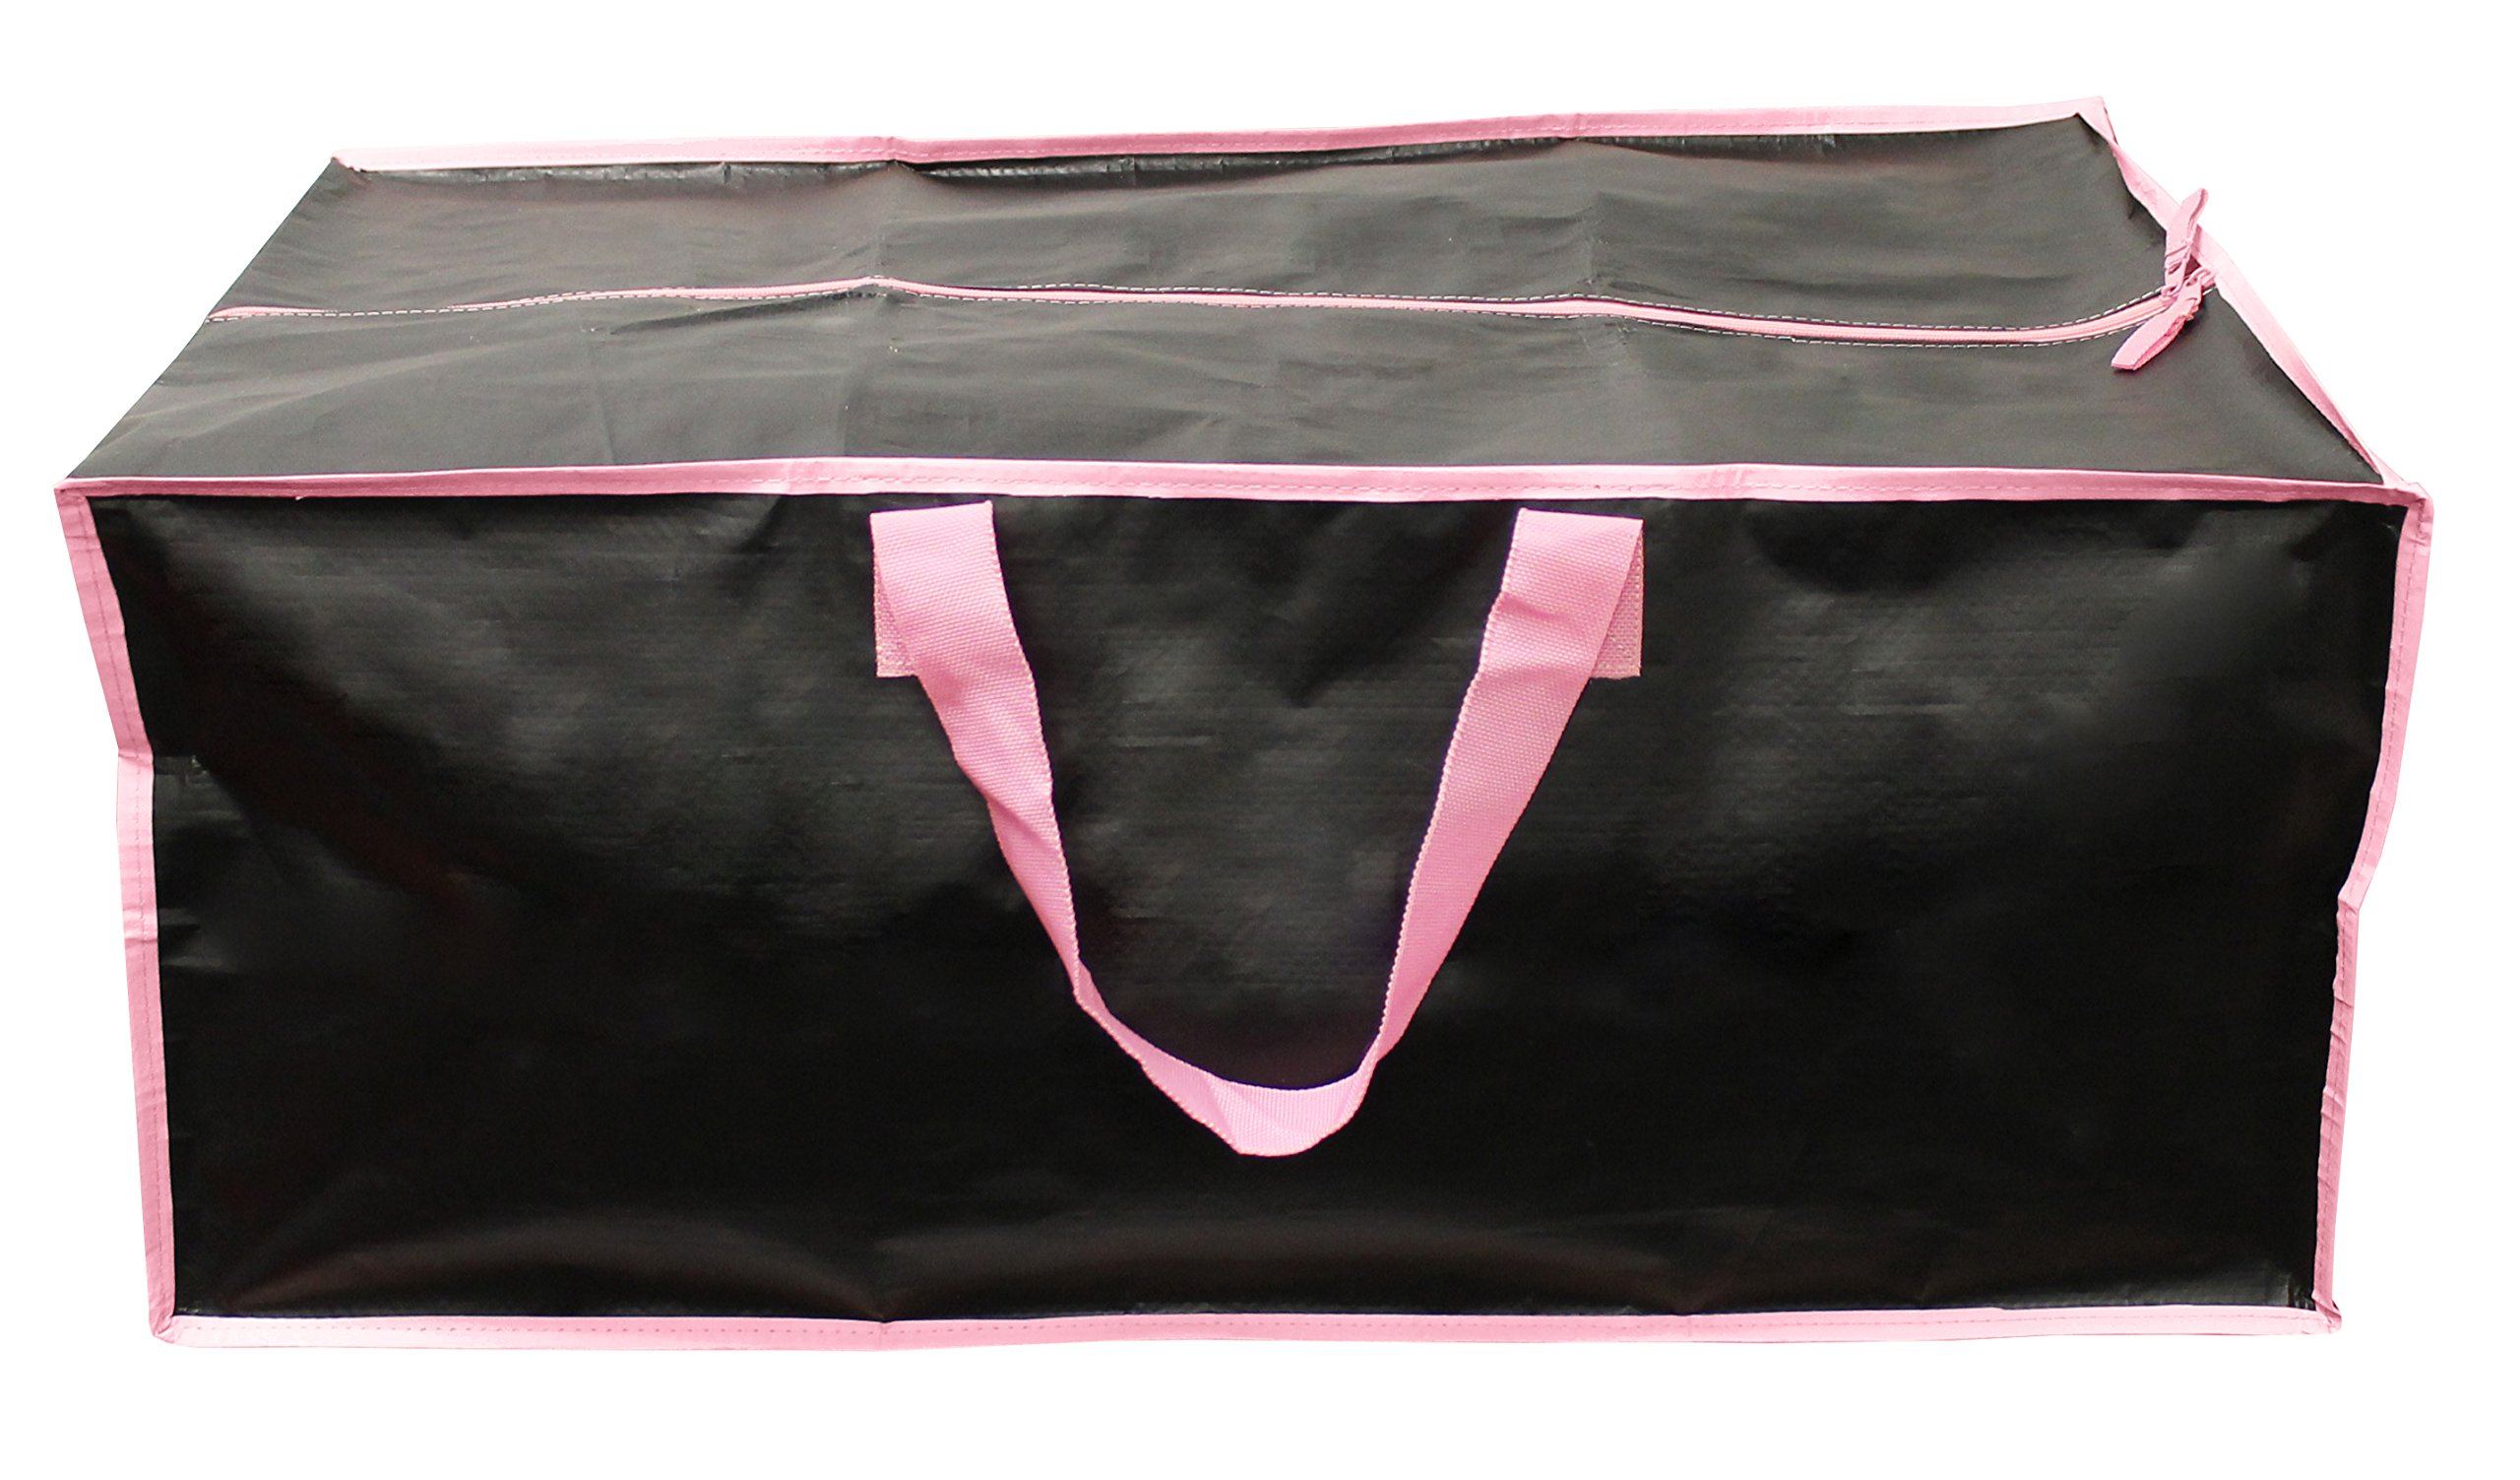 Earthwise Extra Large Reusable Storage Bags Totes Container Backpack Handles w/Zipper closure in Matte Black with Pink Trim Great for MOVING, Compatible with IKEA Frakta Carts (SET OF 4) by Earthwise (Image #3)